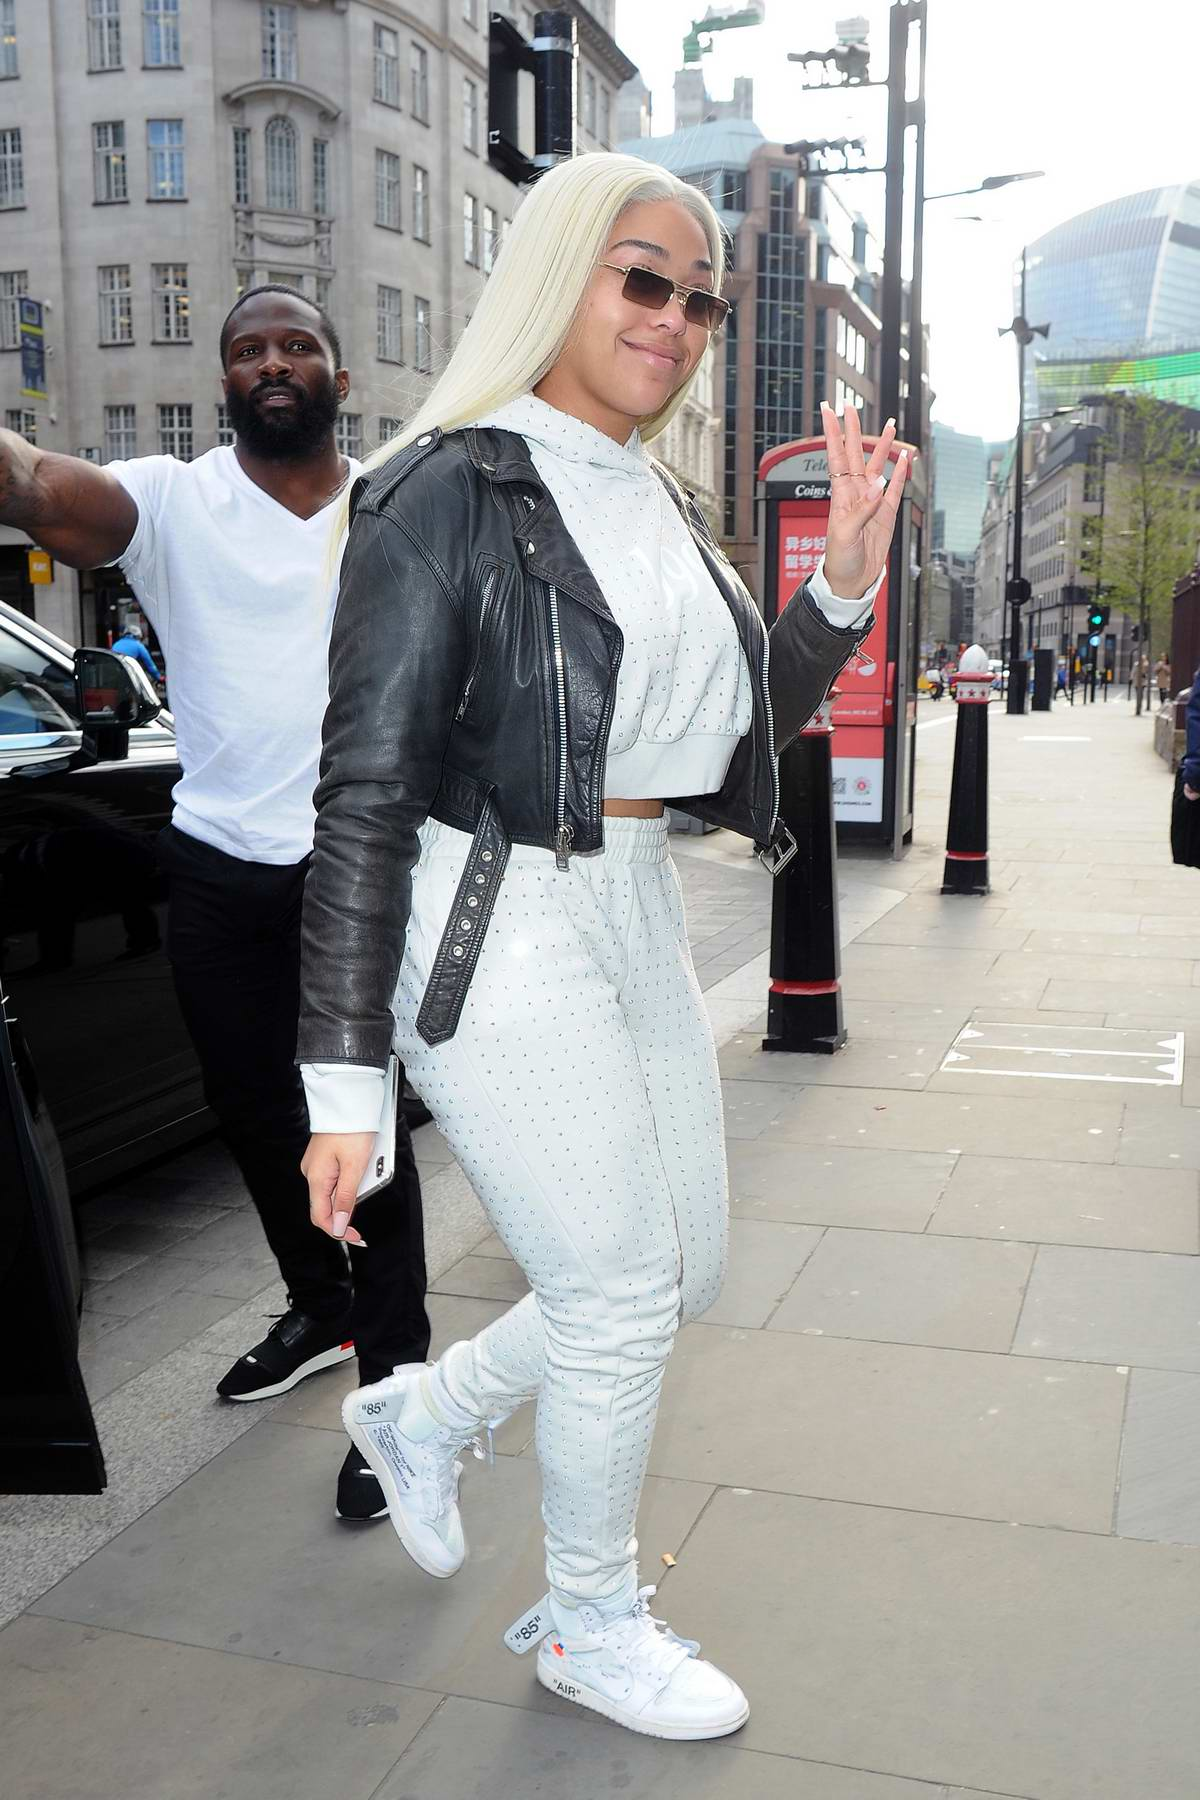 Jordyn Woods leaving her hotel with a new blonde hairstyle in London, UK